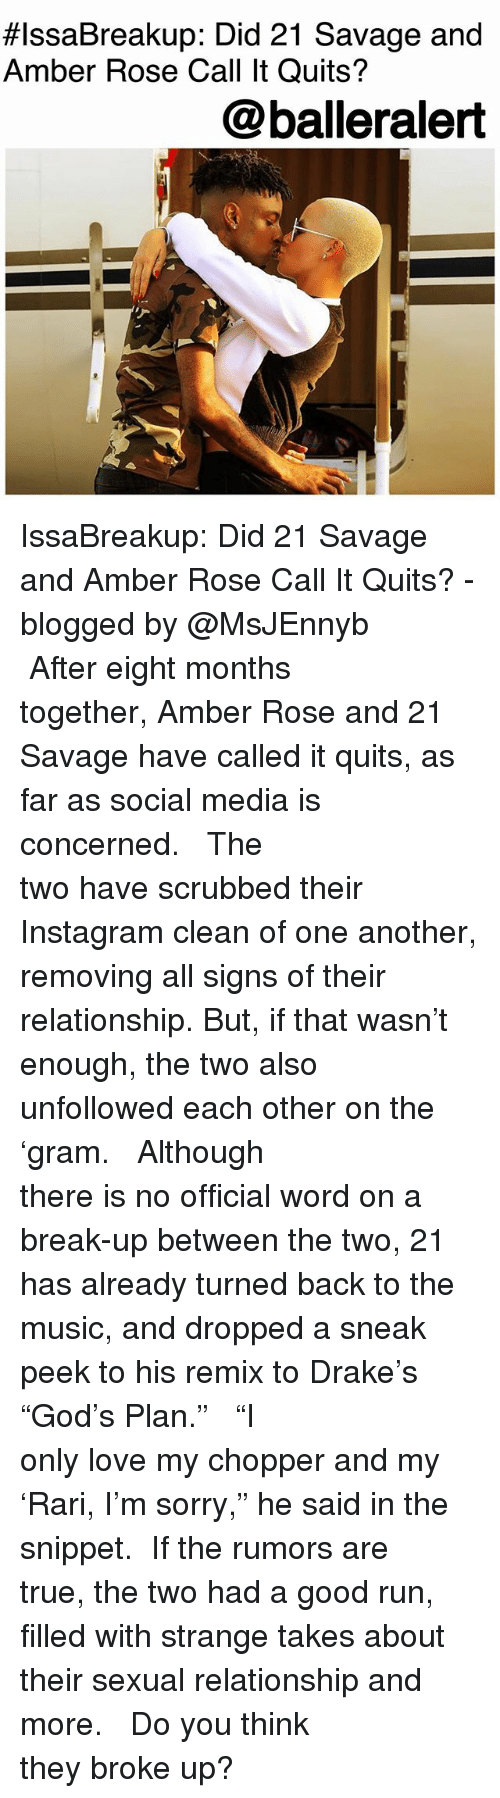 "Amber Rose, Drake, and Instagram:  #IssaBreakup: Did 21 Savage and  Amber Rose Call It Quits?  @balleralert IssaBreakup: Did 21 Savage and Amber Rose Call It Quits? - blogged by @MsJEnnyb ⠀⠀⠀⠀⠀⠀⠀⠀⠀ ⠀⠀⠀⠀⠀⠀⠀⠀⠀ After eight months together, Amber Rose and 21 Savage have called it quits, as far as social media is concerned. ⠀⠀⠀⠀⠀⠀⠀⠀⠀ ⠀⠀⠀⠀⠀⠀⠀⠀⠀ The two have scrubbed their Instagram clean of one another, removing all signs of their relationship. But, if that wasn't enough, the two also unfollowed each other on the 'gram. ⠀⠀⠀⠀⠀⠀⠀⠀⠀ ⠀⠀⠀⠀⠀⠀⠀⠀⠀ Although there is no official word on a break-up between the two, 21 has already turned back to the music, and dropped a sneak peek to his remix to Drake's ""God's Plan."" ⠀⠀⠀⠀⠀⠀⠀⠀⠀ ⠀⠀⠀⠀⠀⠀⠀⠀⠀ ""I only love my chopper and my 'Rari, I'm sorry,"" he said in the snippet. ⠀⠀⠀⠀⠀⠀⠀⠀⠀ If the rumors are true, the two had a good run, filled with strange takes about their sexual relationship and more. ⠀⠀⠀⠀⠀⠀⠀⠀⠀ ⠀⠀⠀⠀⠀⠀⠀⠀⠀ Do you think they broke up?"